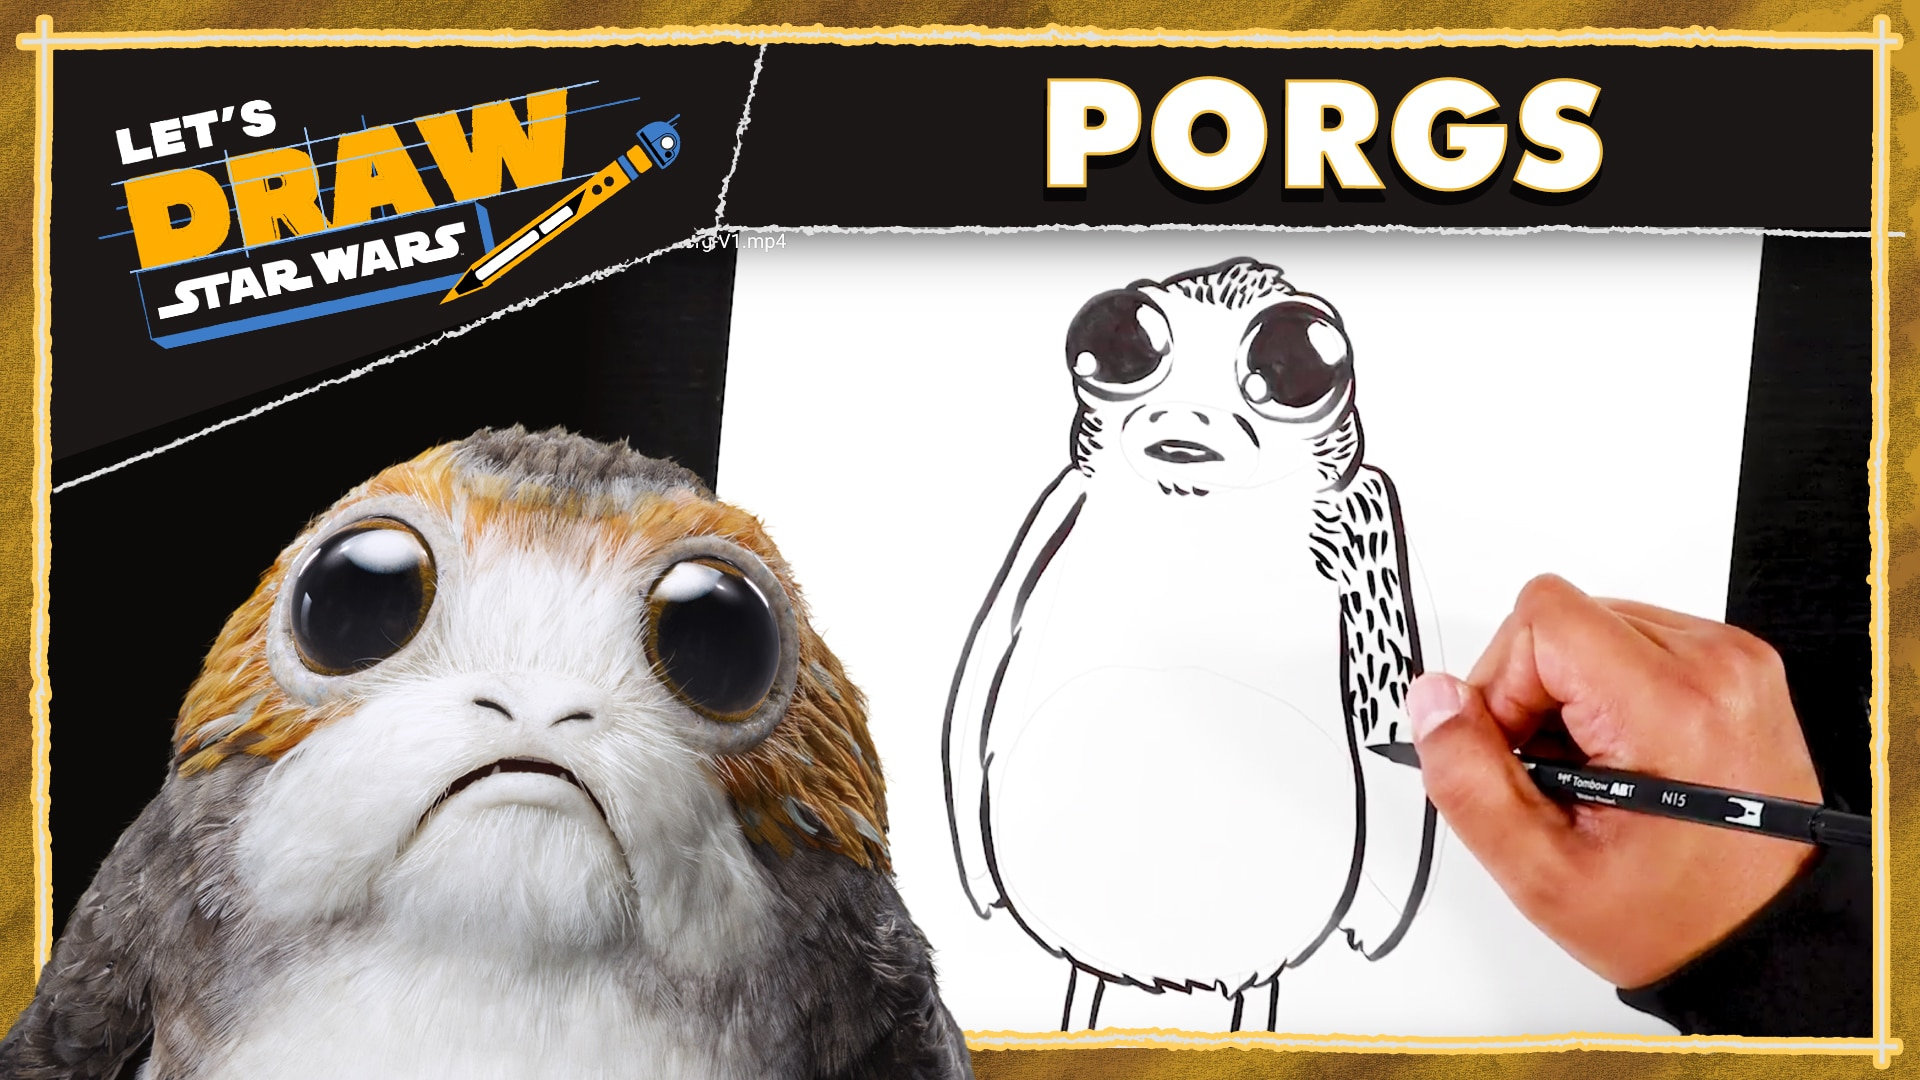 How to Draw Porgs | Let's Draw Star Wars